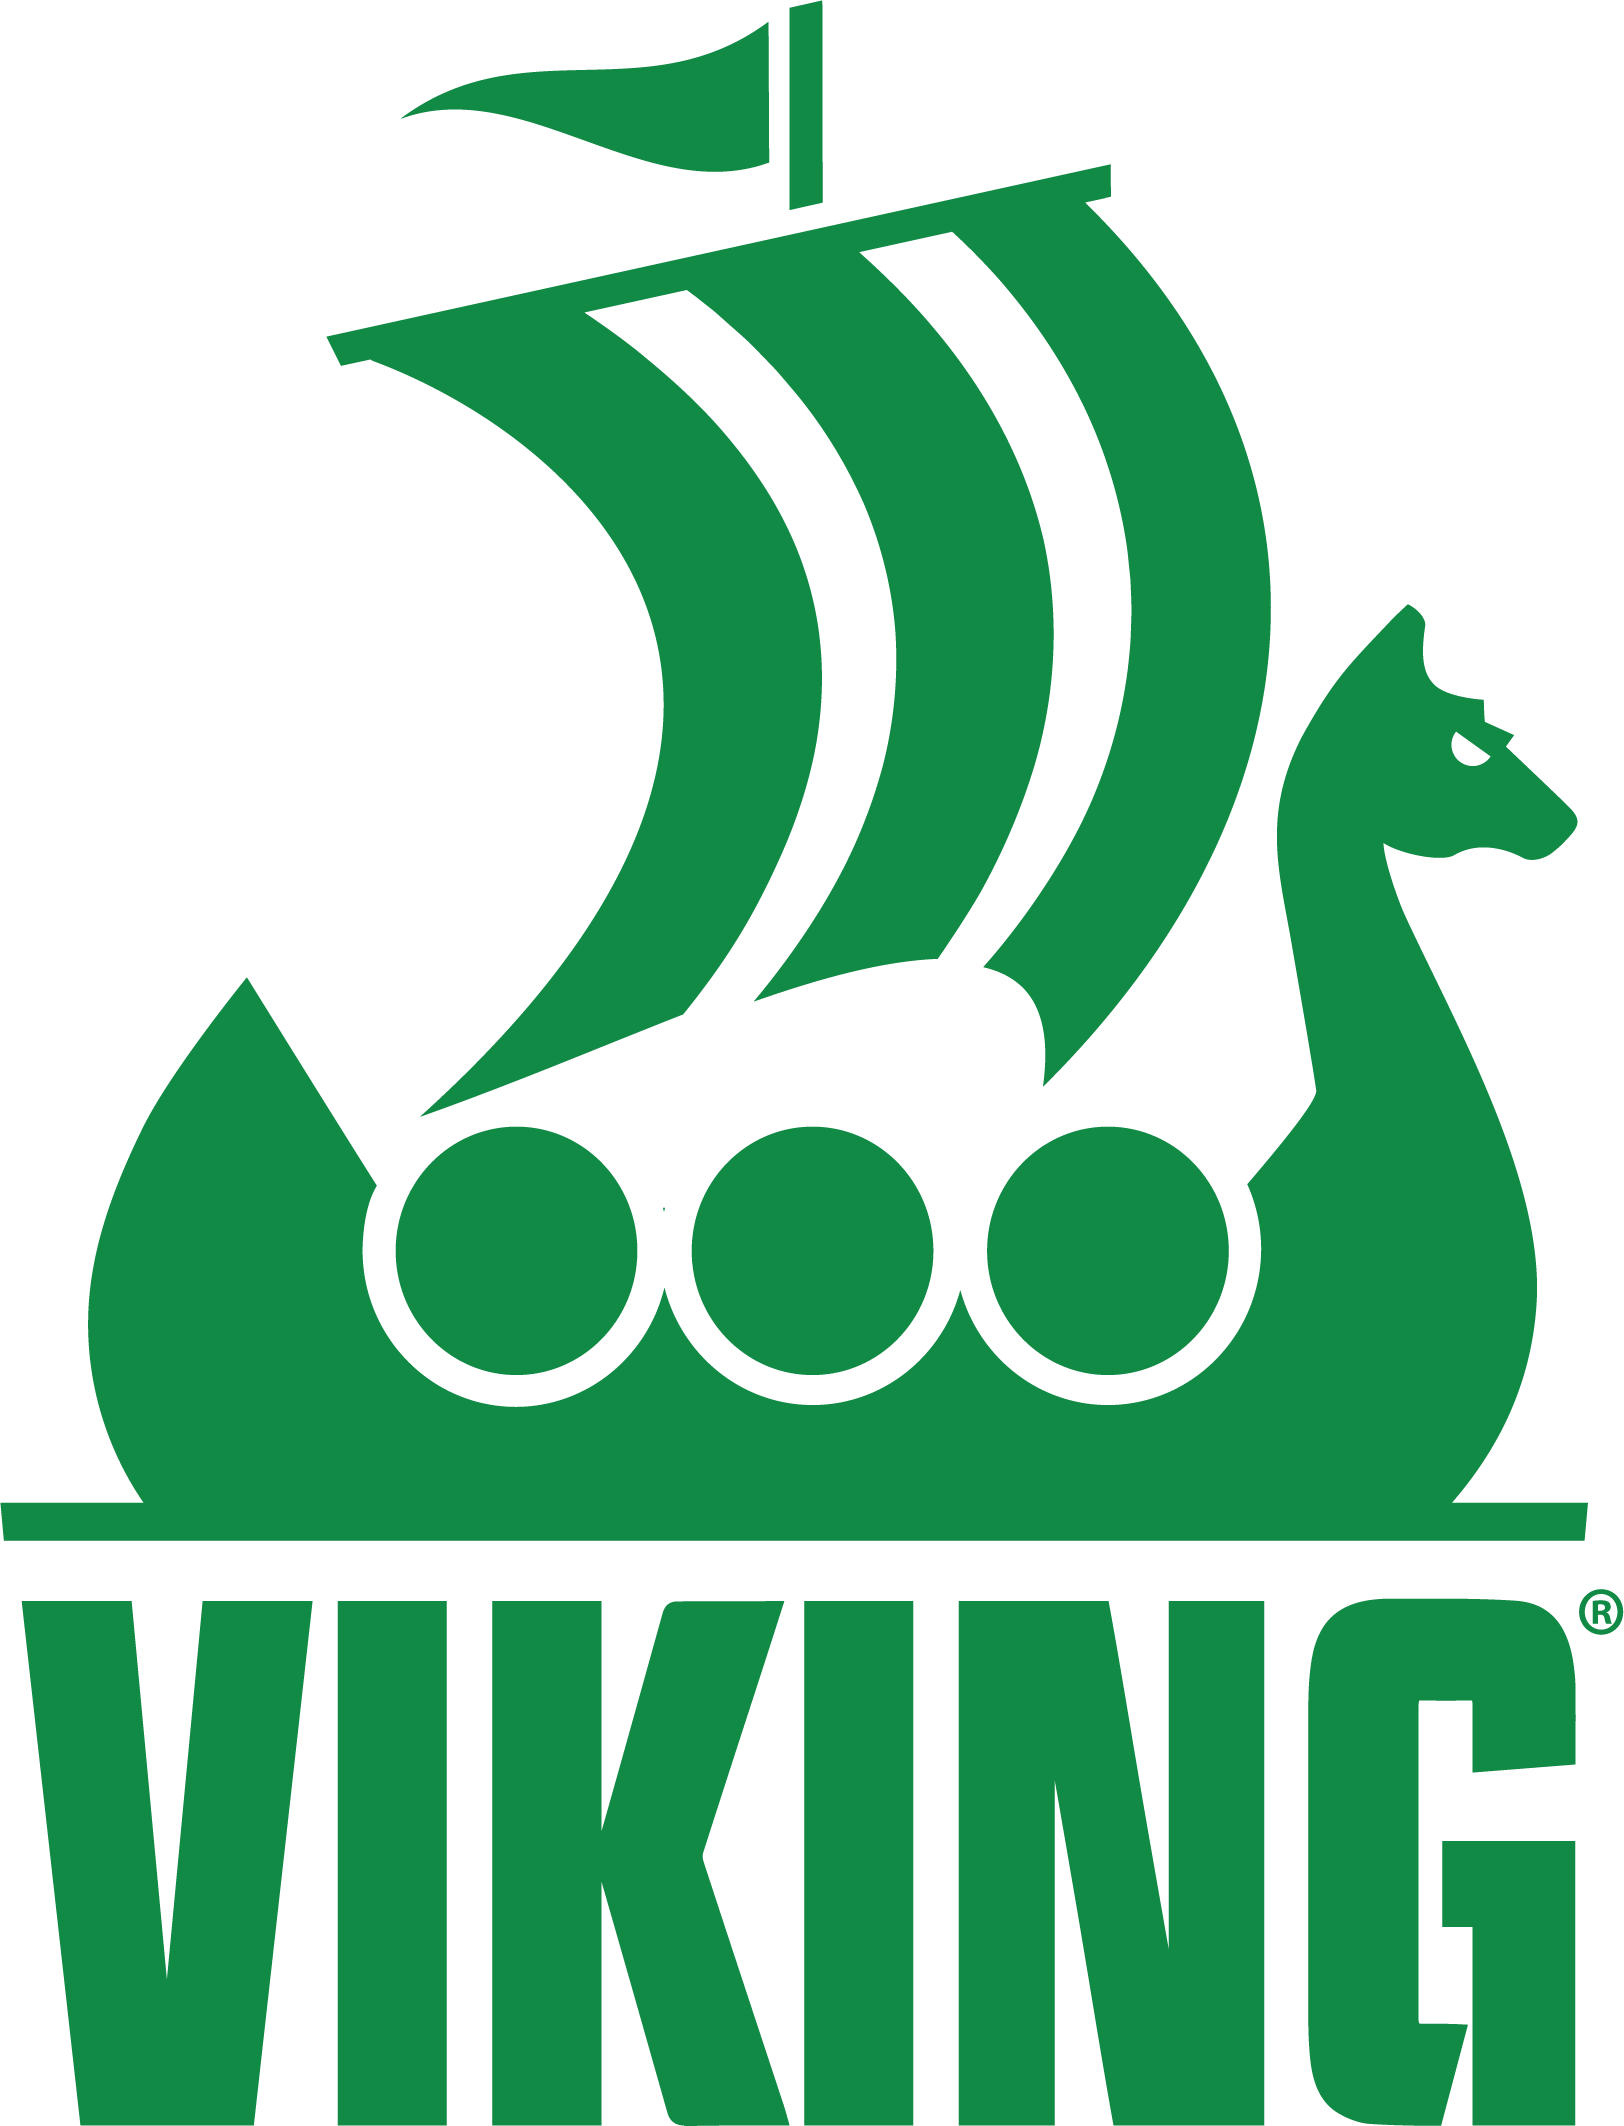 Viking Engineering and Development